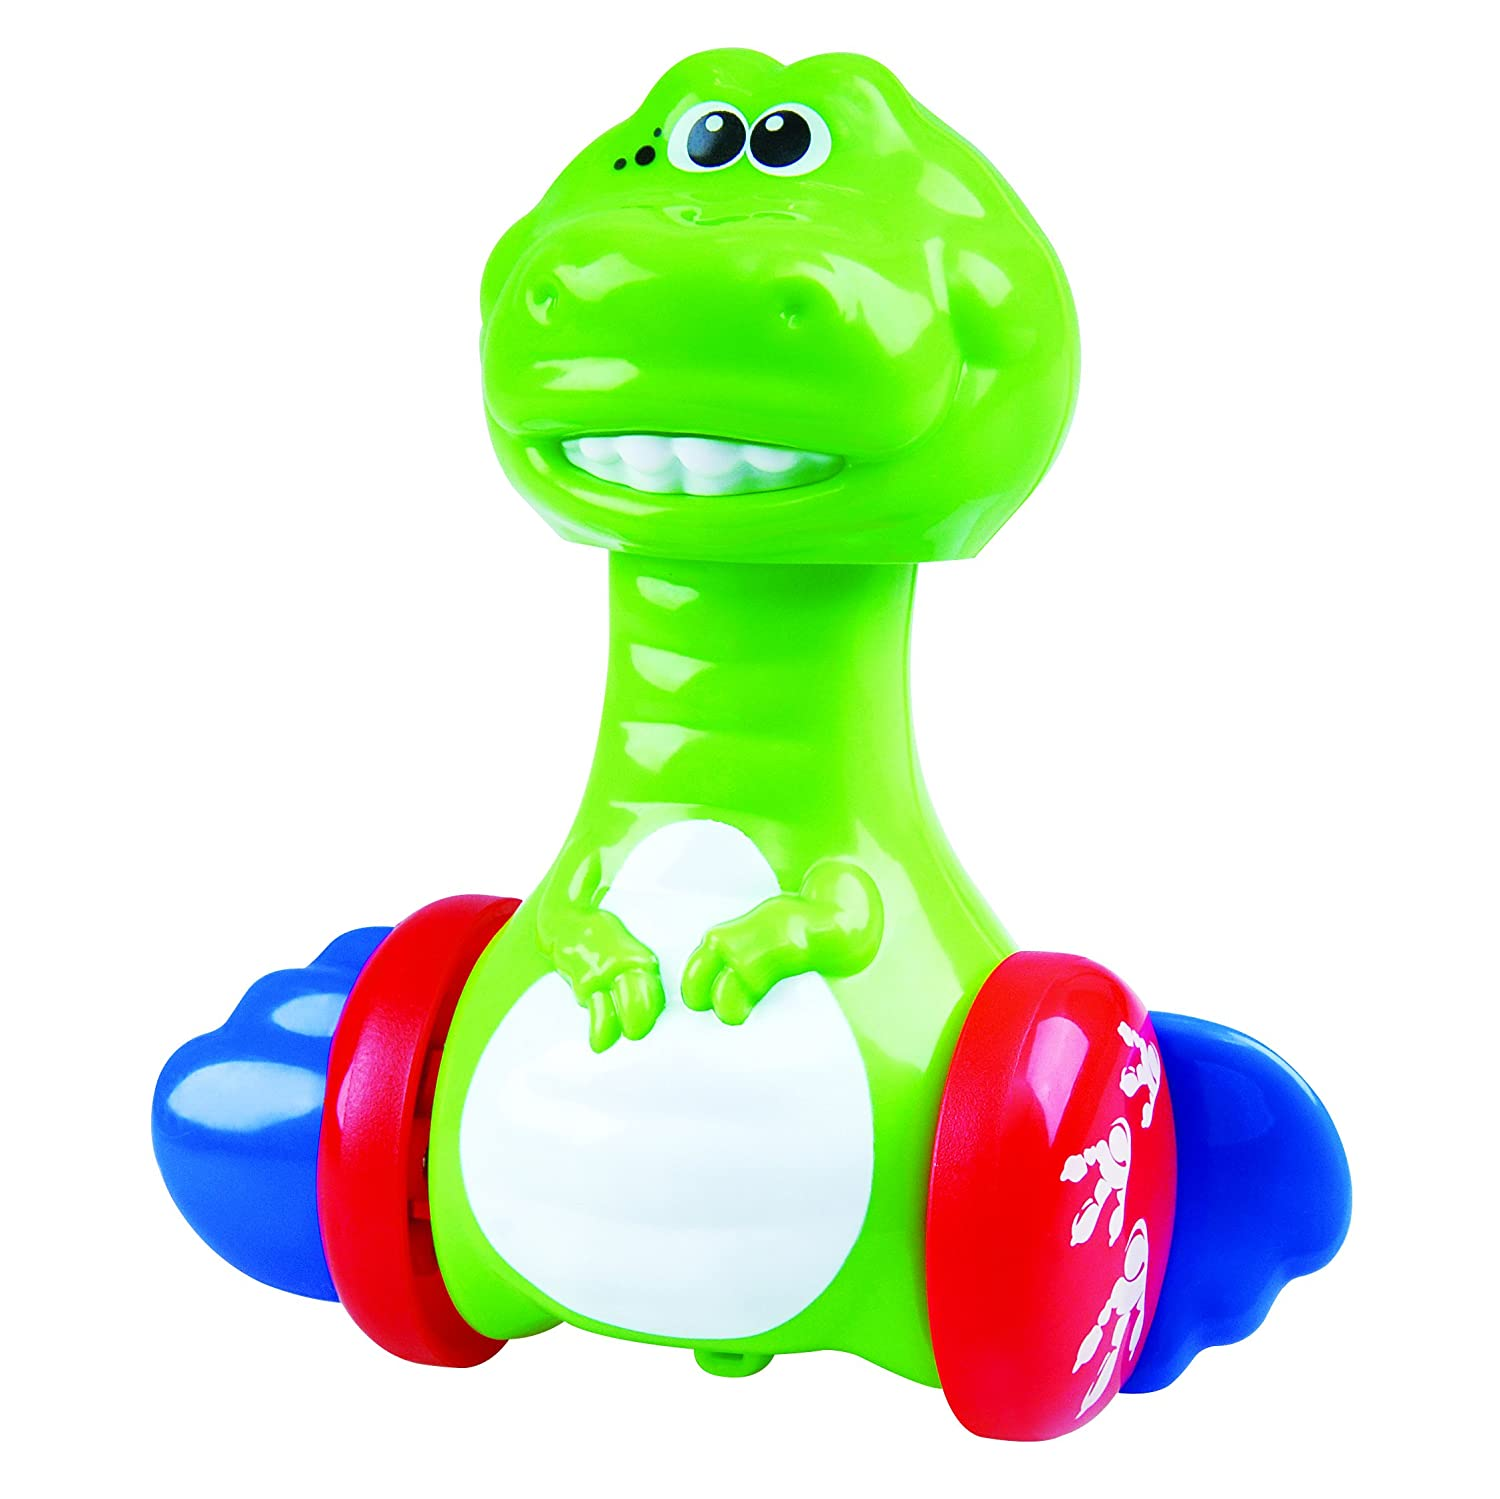 KidSource Early Play Baby Toy Green Blue Red